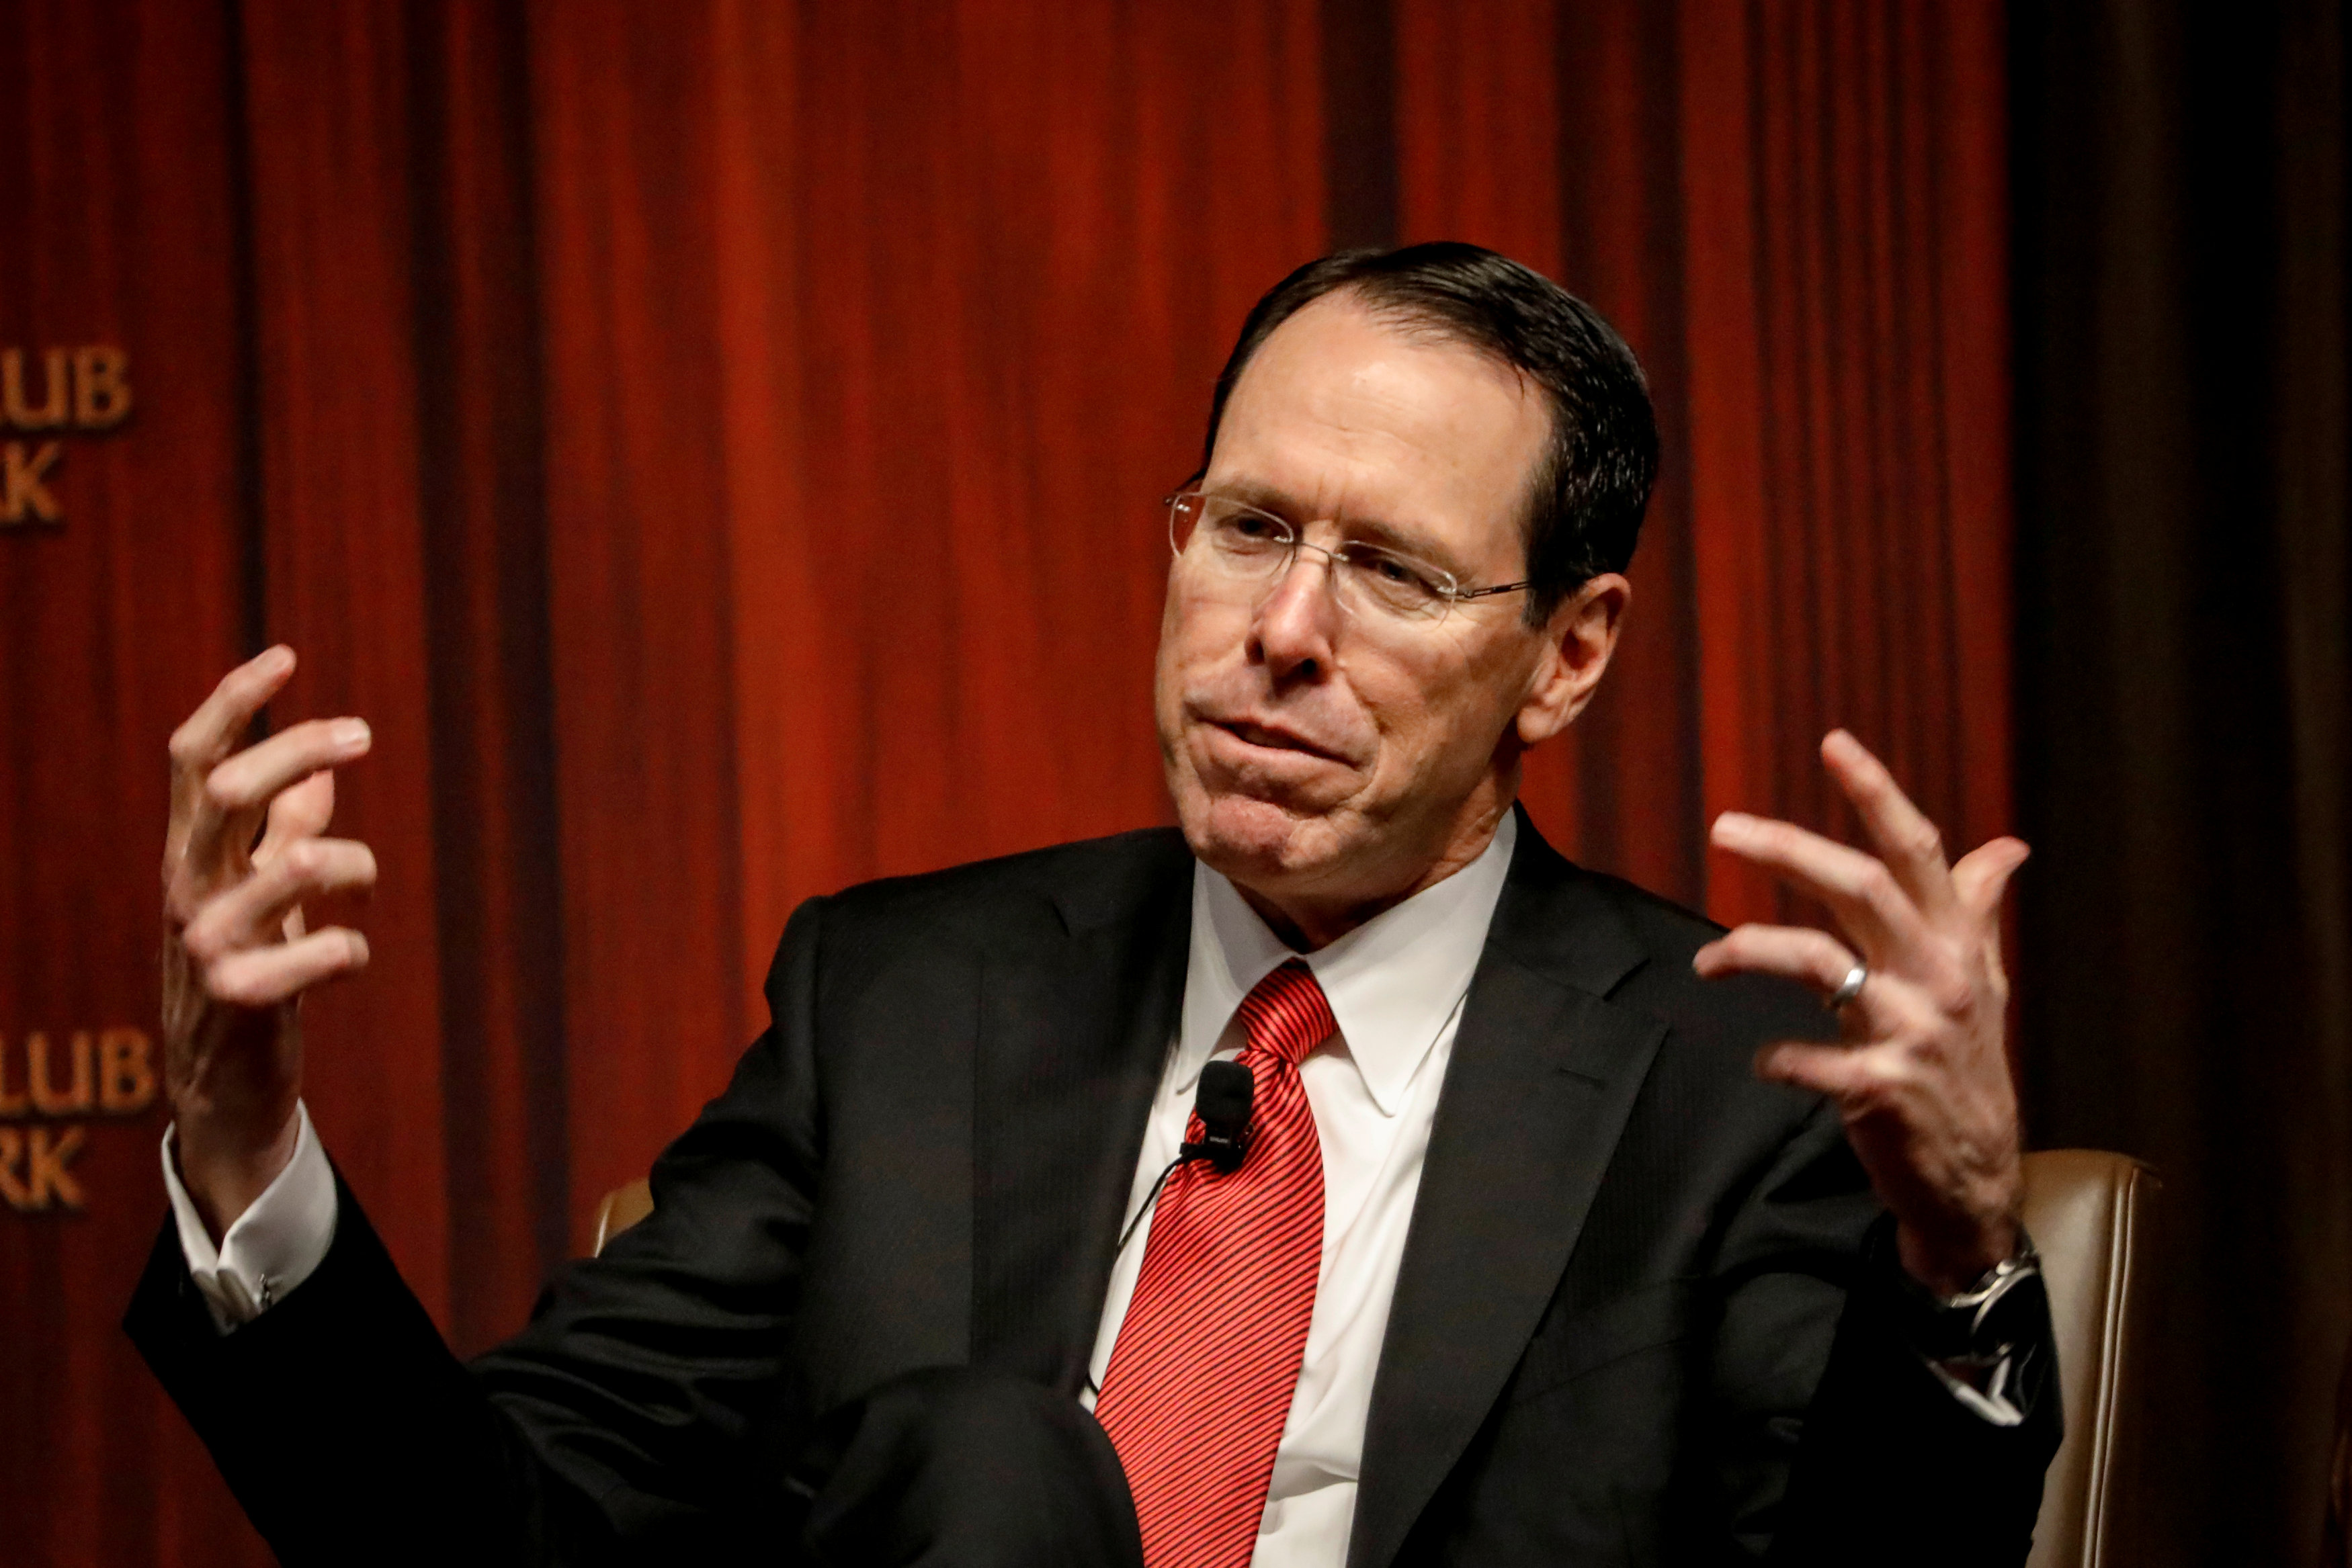 AT&T plans to give $1,000 bonuses to 200,000 employees because of tax reform